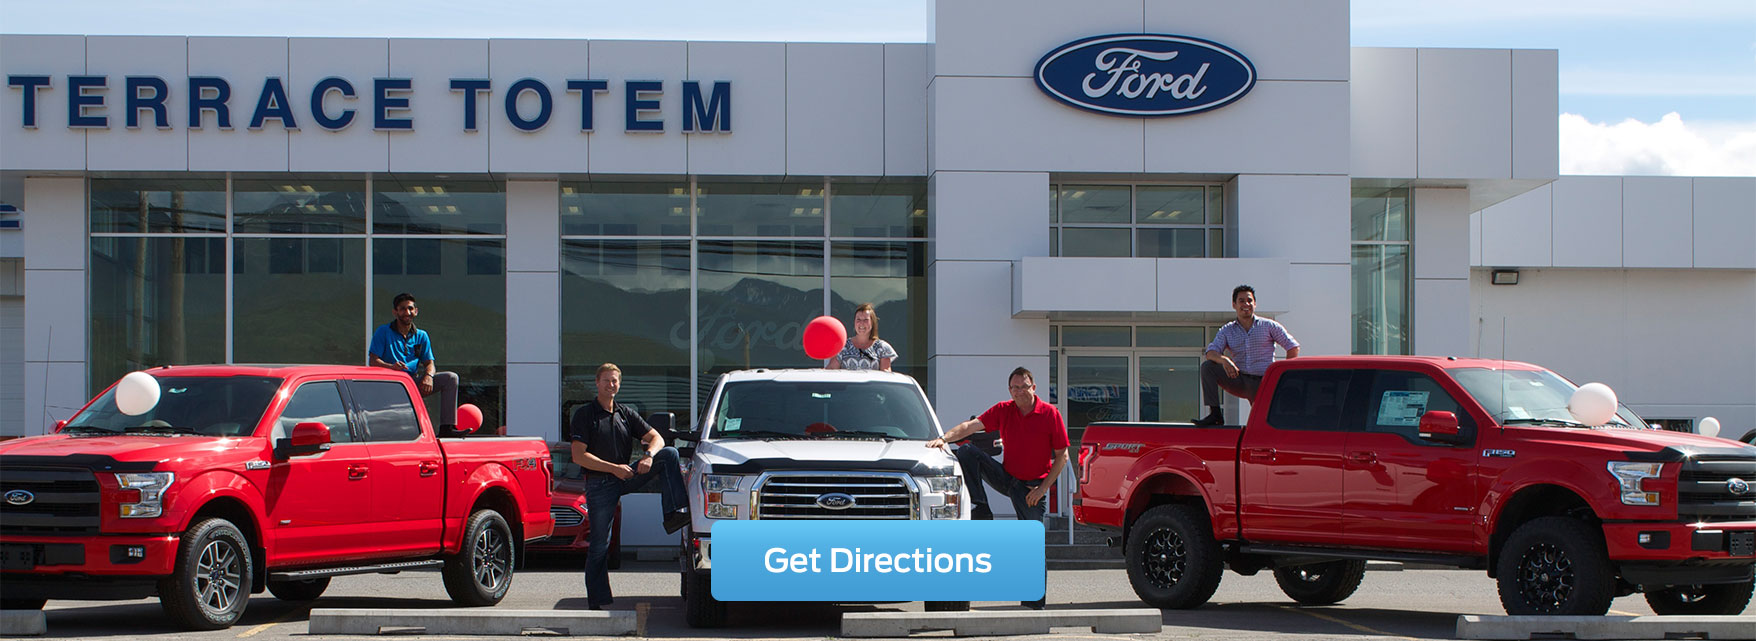 Welcome to Terrace Totem Ford!